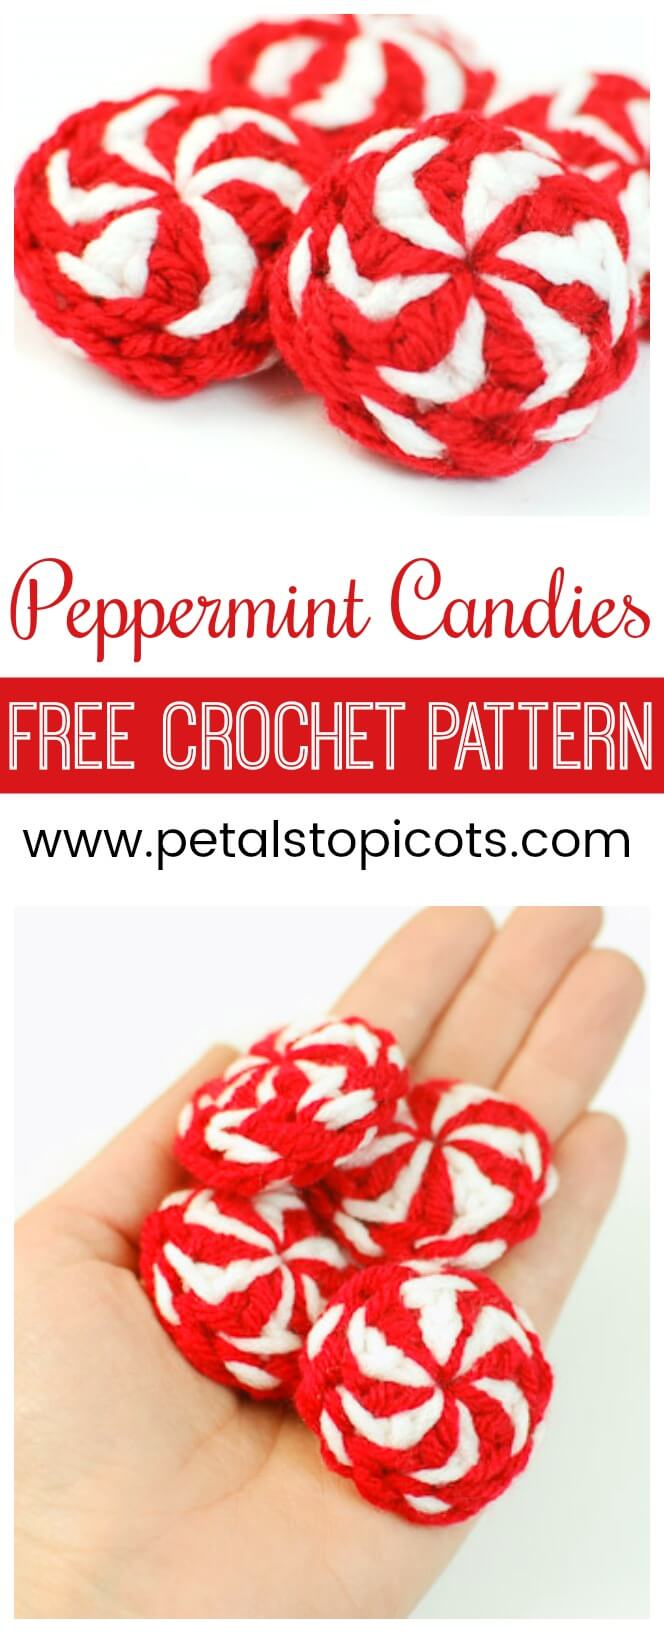 This peppermint candy crochet pattern creates sweet little peppermints reminiscent of holidays past. They are so quick and simple that you can easily make a bowl full in an evening. #petalstopicots